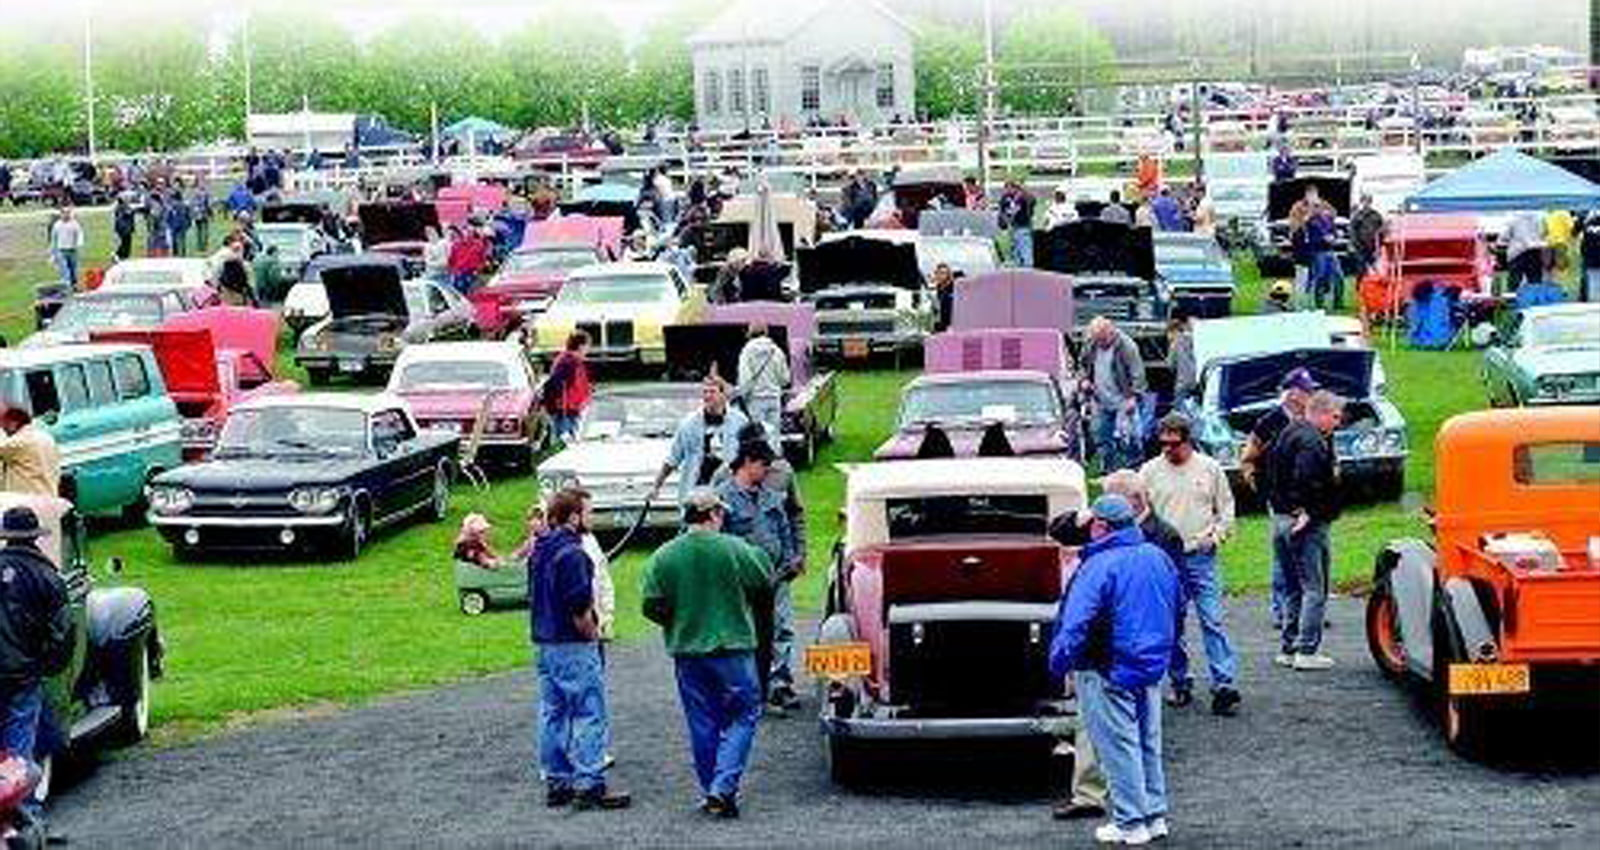 Rhinebeck Antique Car Show | Pore over countless hot rods, custom cars, and 60 antiques and classics. | Photo Courtesy of Dutchess County Fairgrounds